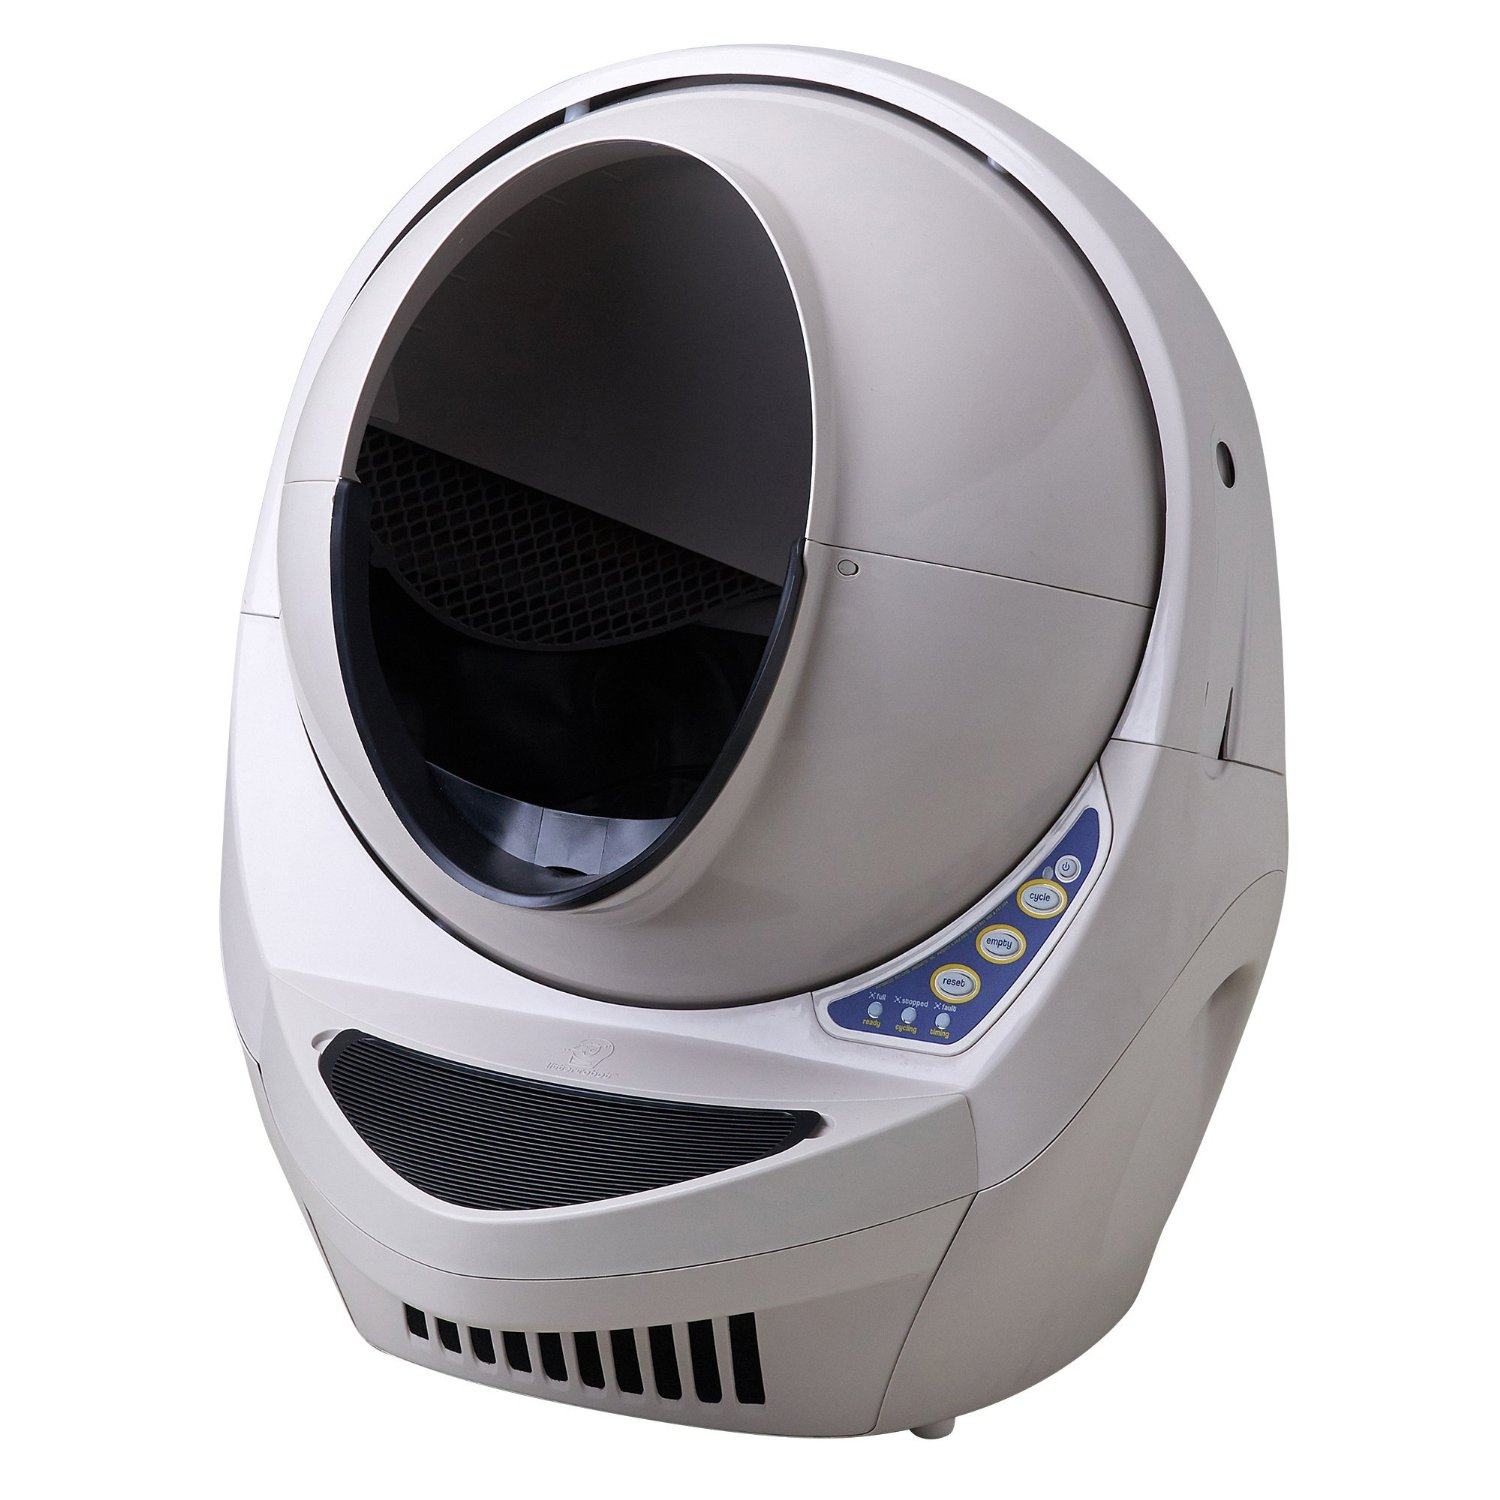 cat litter boxes & pans: best cat litter boxes Shop Petco's large selection of the best cat litter boxes and pans to keep your kitty feeling fresh. Unlike many other pets, your feline can be particular when it comes to where they go.